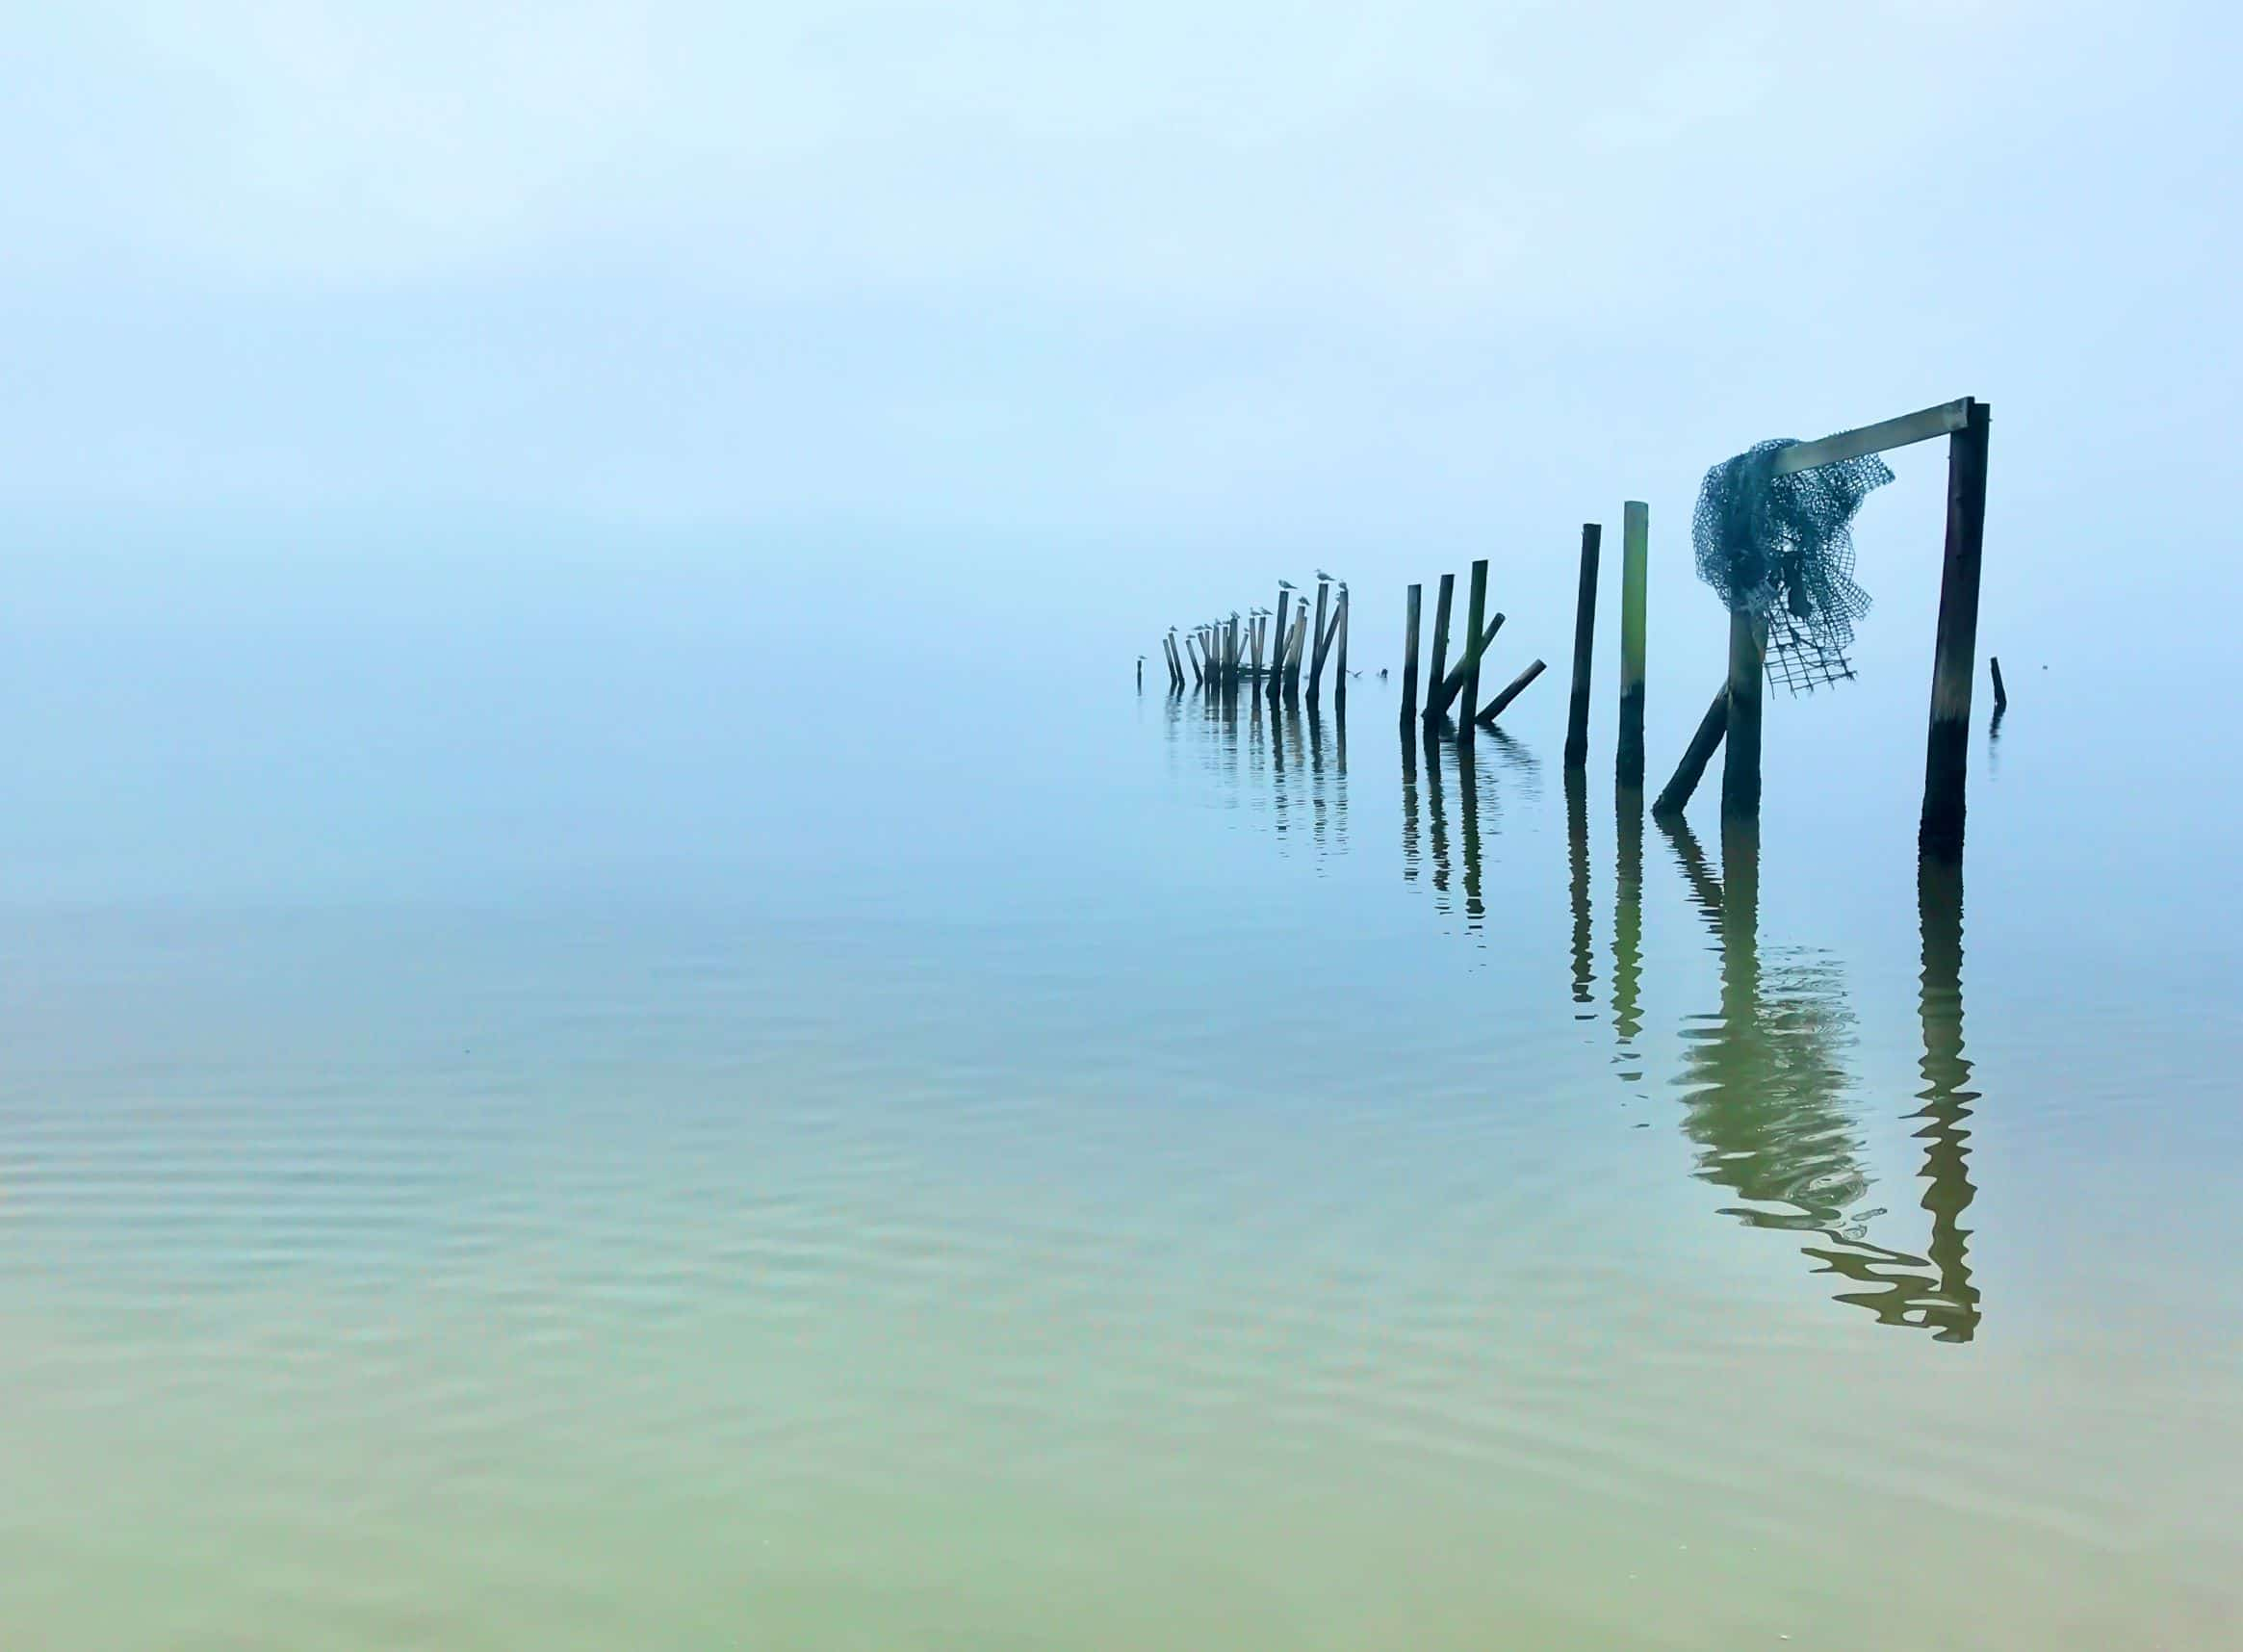 The fog settles on Mobile Bay, allowing me to see only what's in front of me.